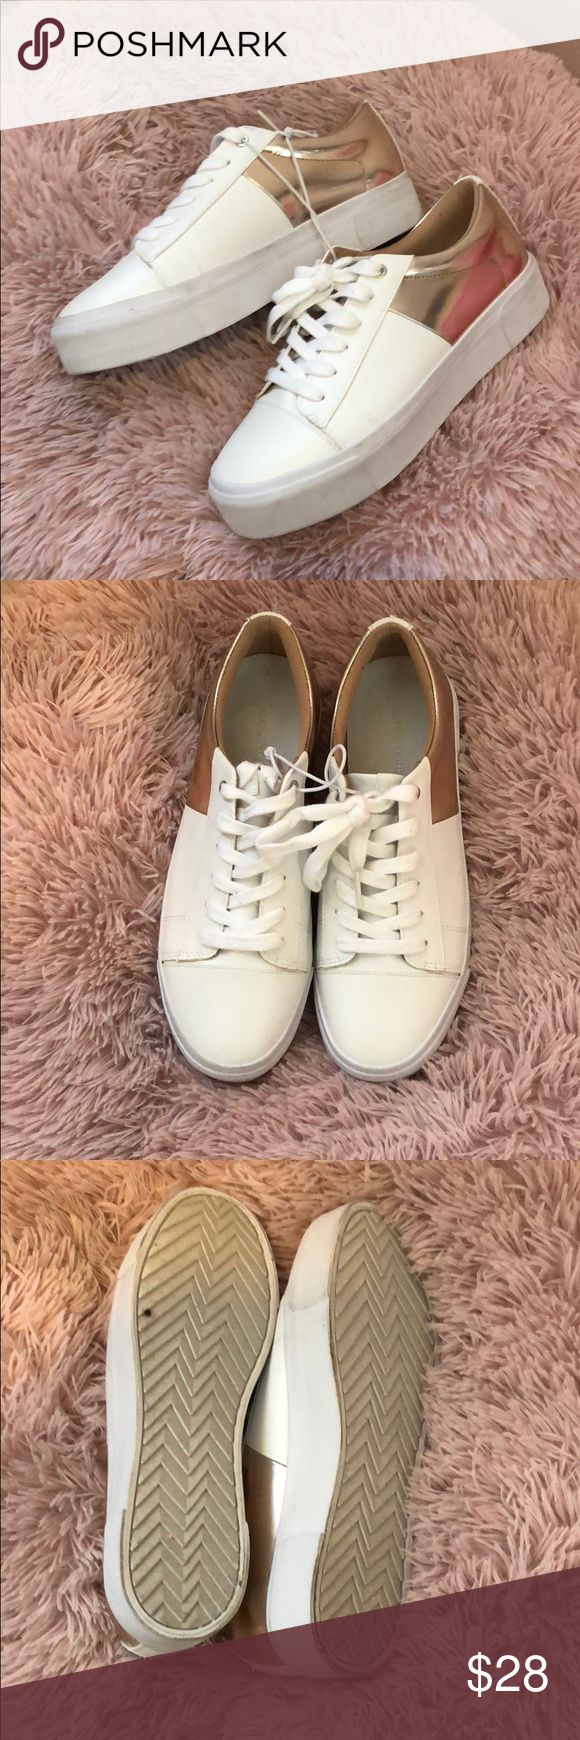 "Marc Fisher ""XENA"" rose gold platform tennis shoe New no box. Leather and rose gold platforms. Trendy and versatile. Super comfortable. Size 7.5 women's. Marc Fisher Shoes Platforms"